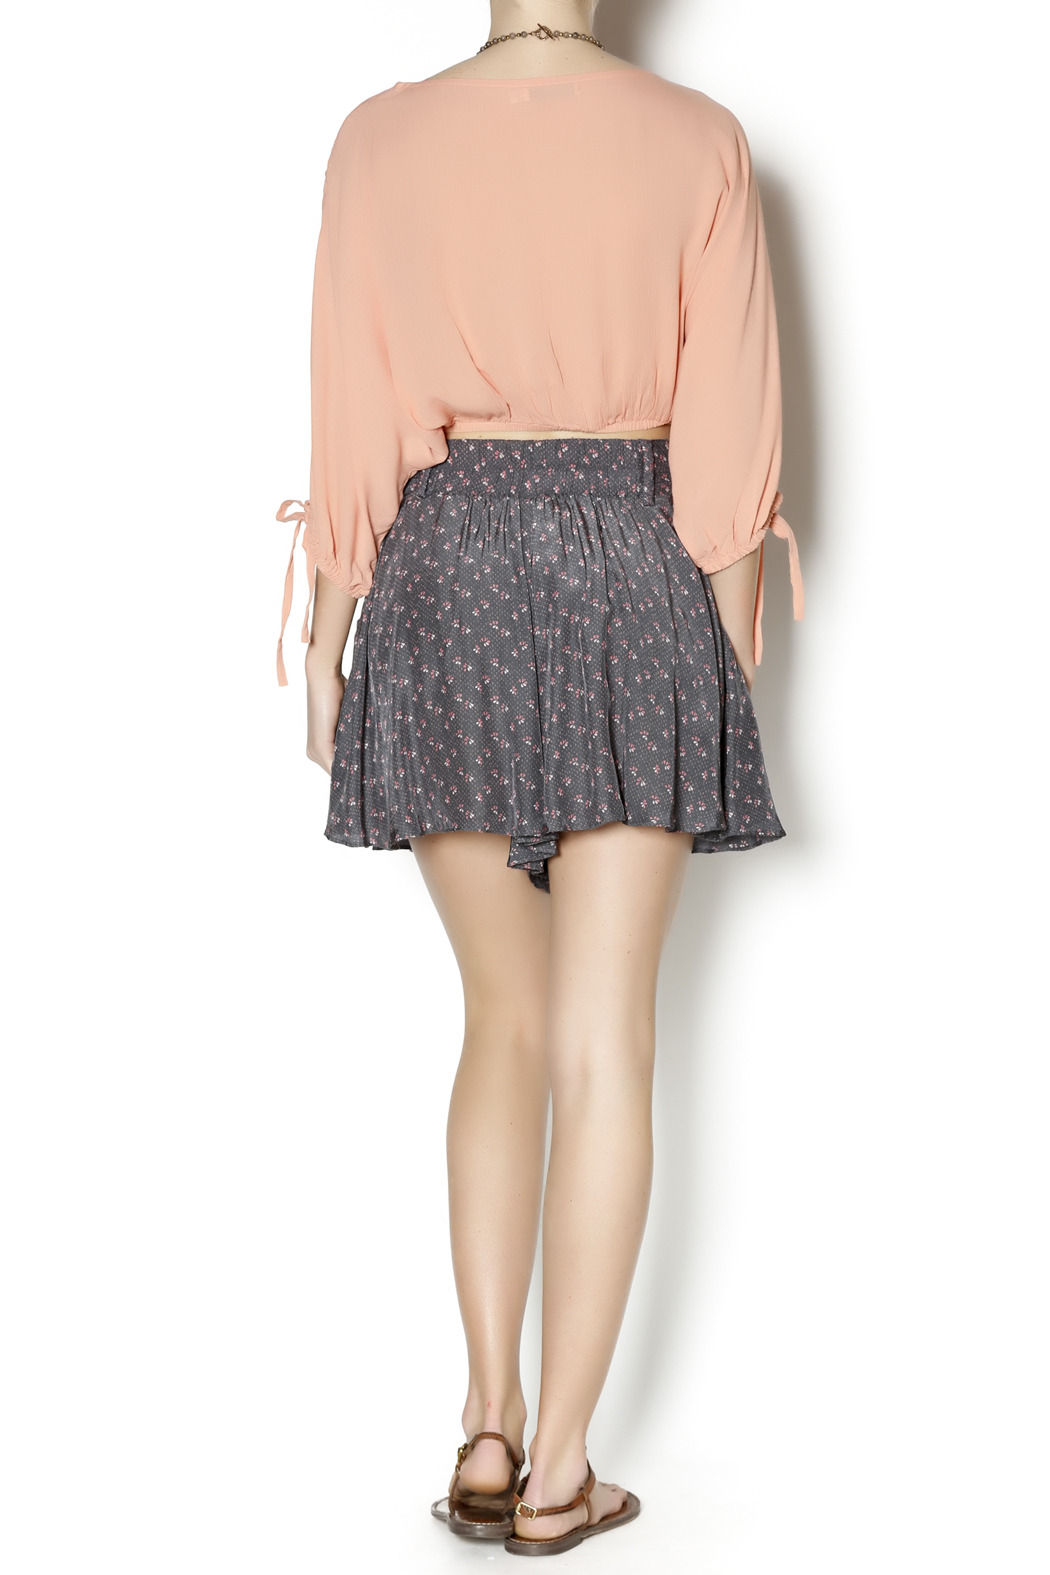 Free People Retro Floral Shorts - Side Cropped Image